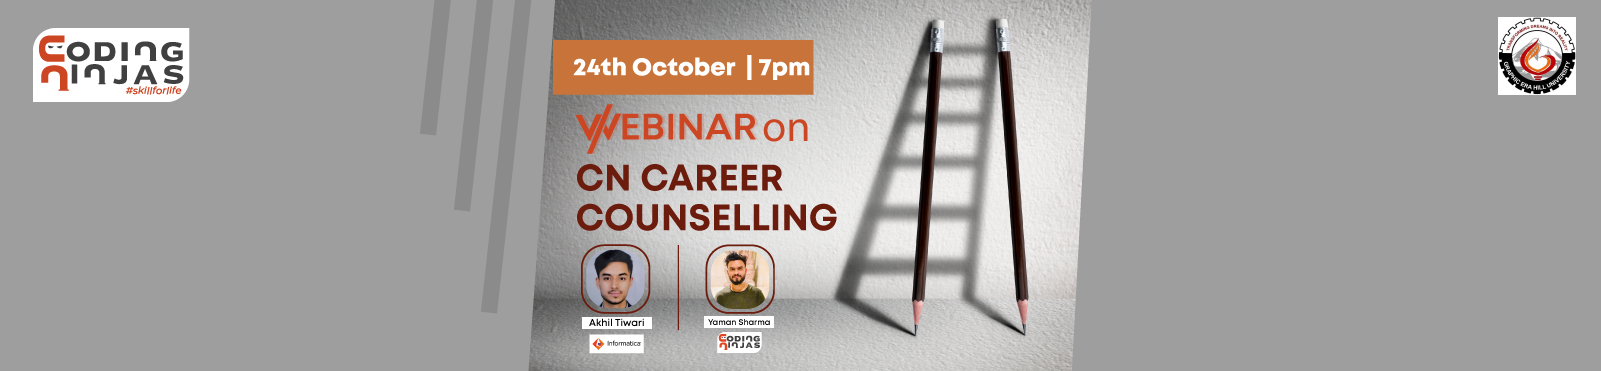 CN Career Counselling Webinar by Alumnus, Graphic Era